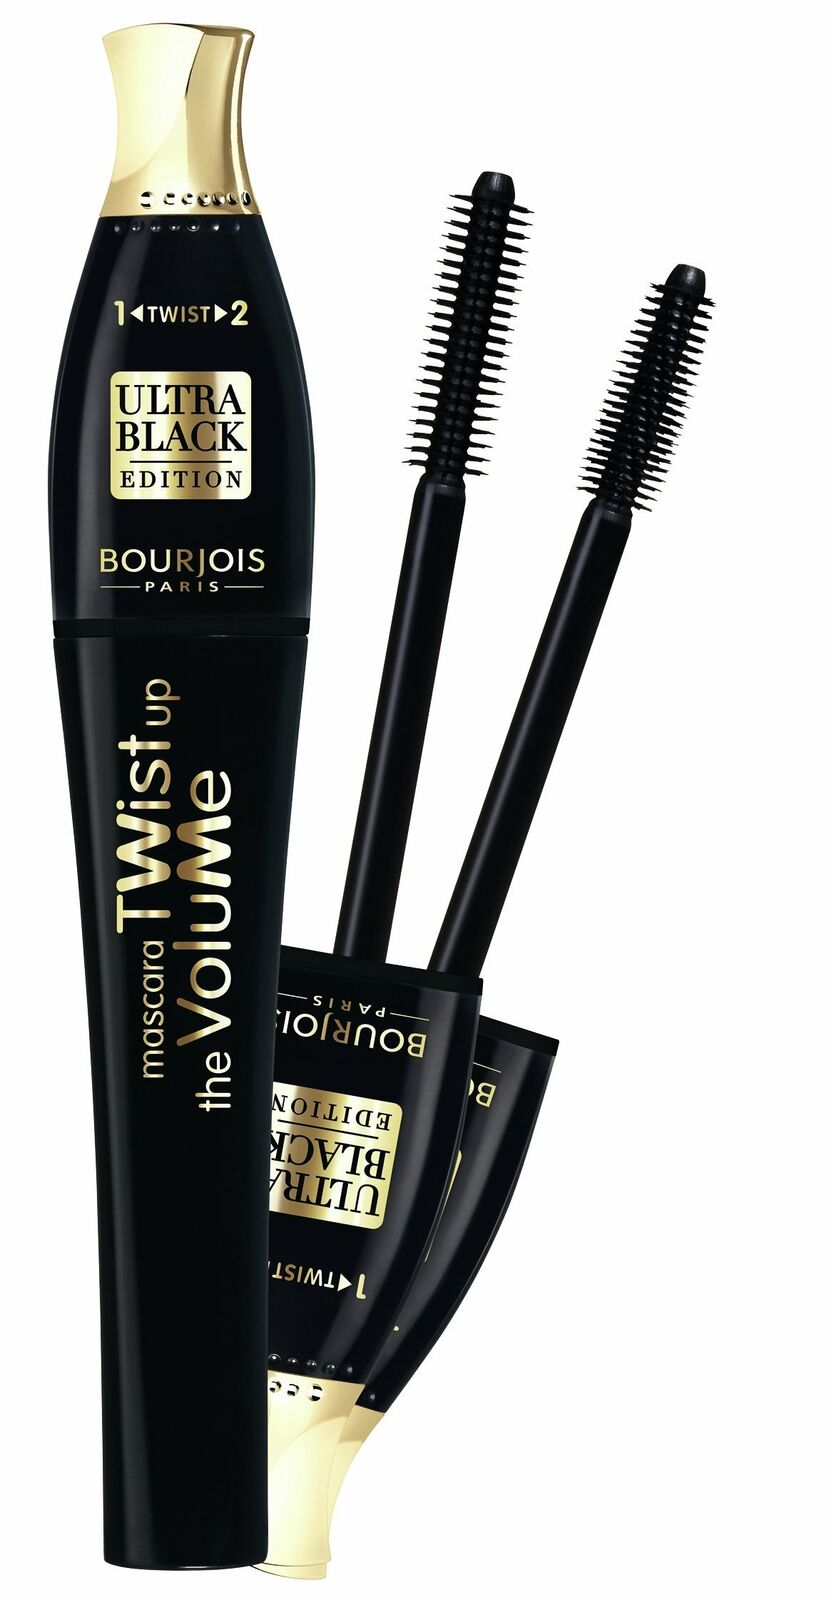 Bourjois Twist Up The Volume Mascara 8ml - 21 Black Tusz do rzes czarny